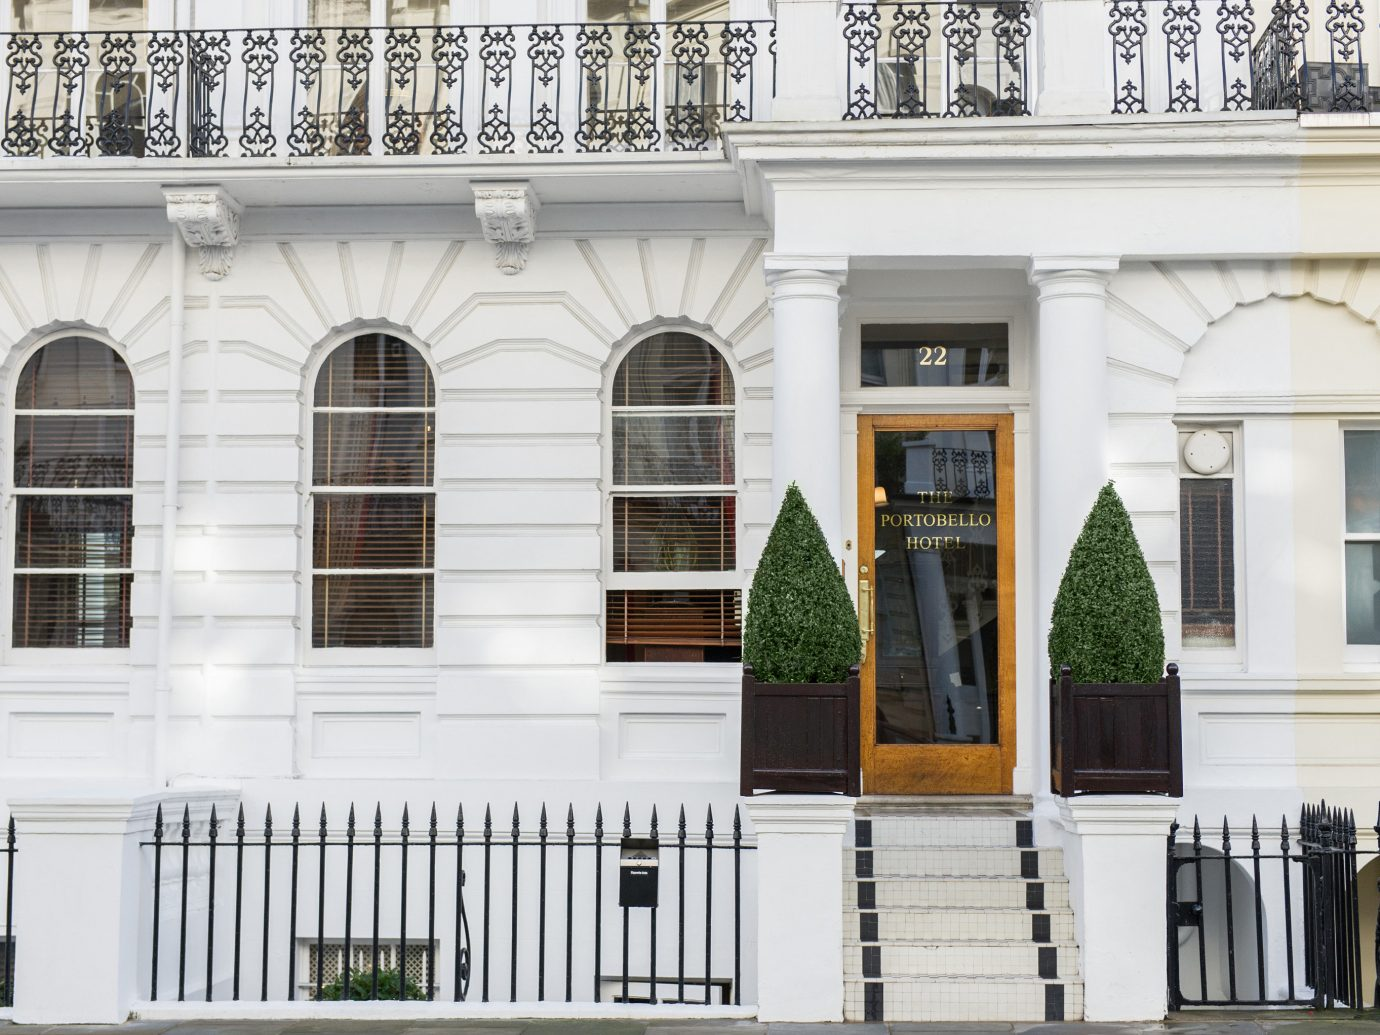 Boutique Hotels London Romantic Hotels outdoor building property Architecture house facade home window estate interior design palace window covering door condominium baluster mansion stone